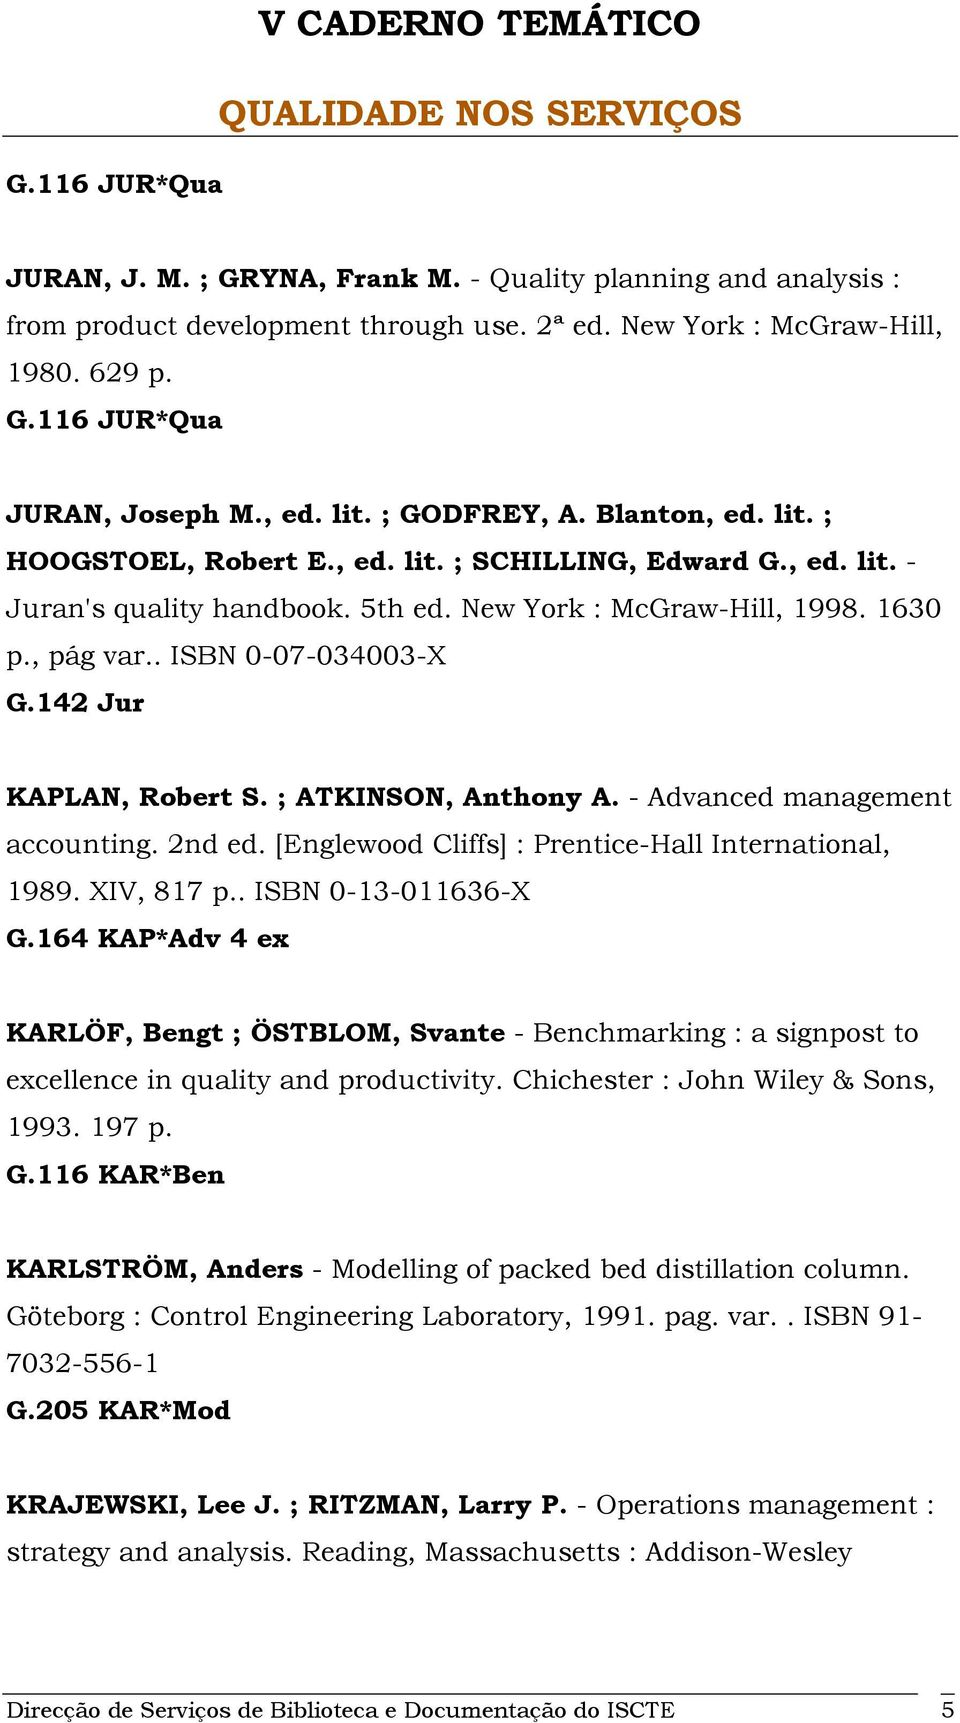 . ISBN 0-07-034003-X G.142 Jur KAPLAN, Robert S. ; ATKINSON, Anthony A. - Advanced management accounting. 2nd ed. [Englewood Cliffs] : Prentice-Hall International, 1989. XIV, 817 p.